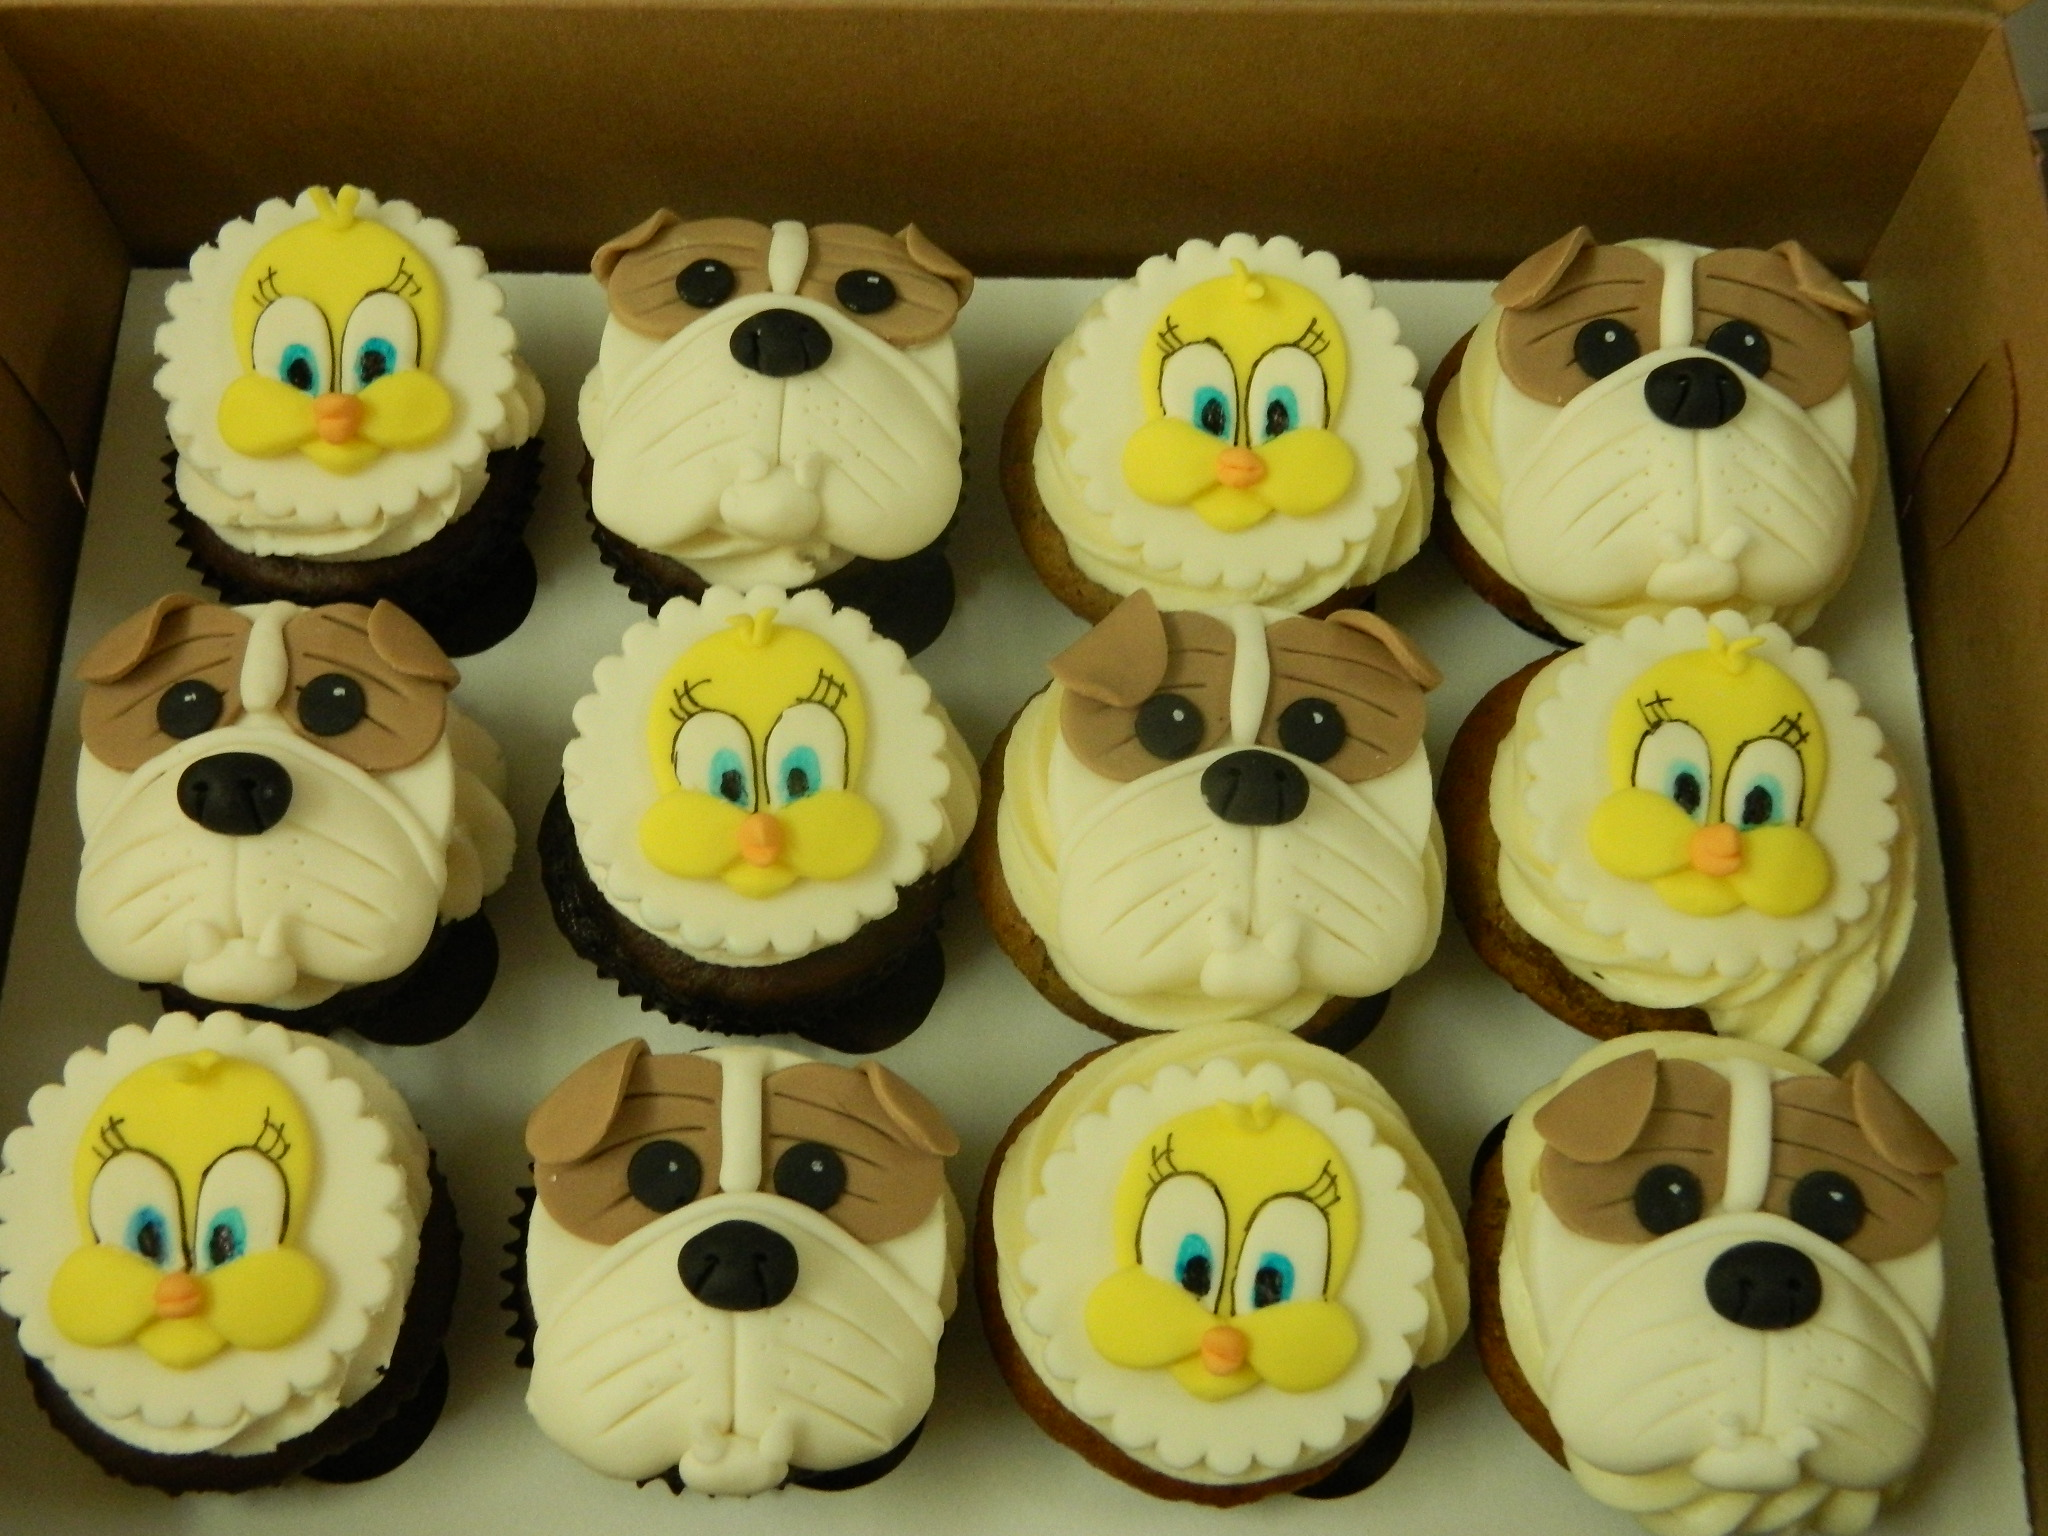 British Bulldogs and Tweety themed custom cupcakes